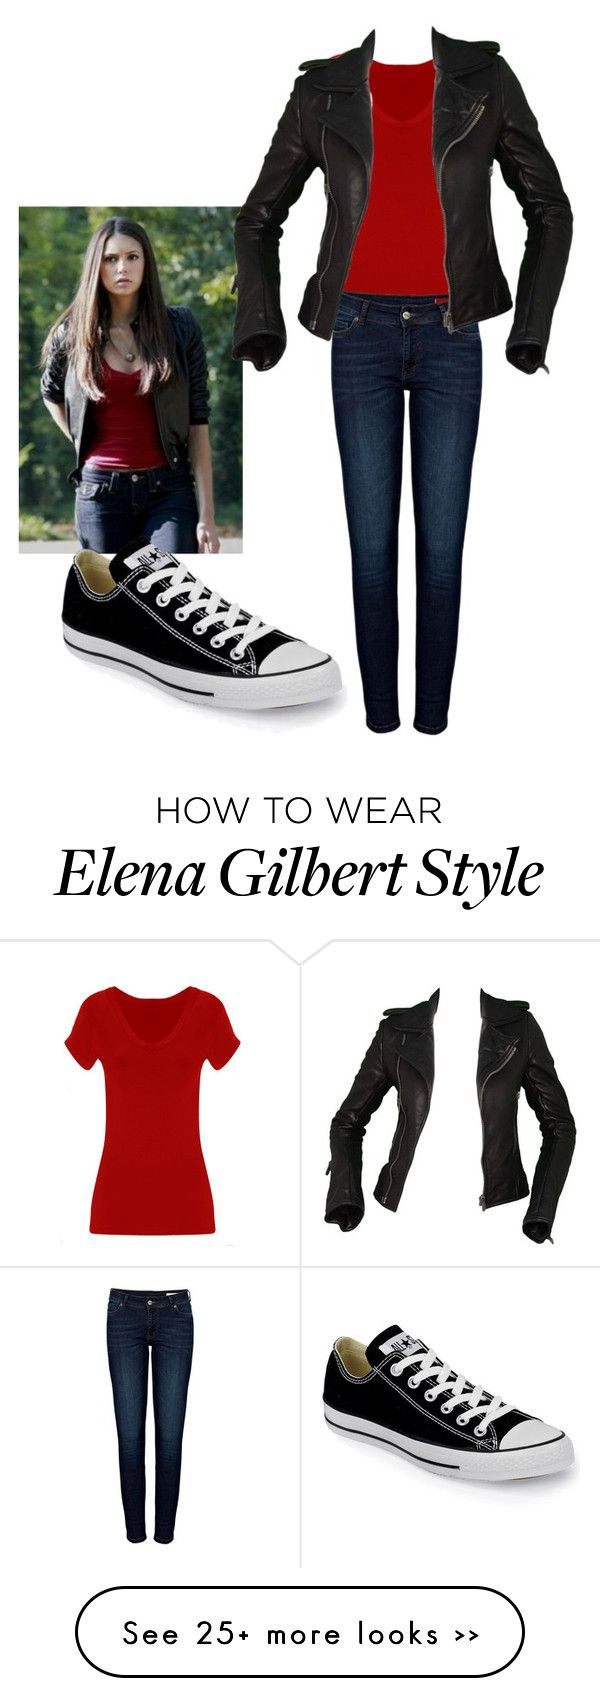 """Elena Gilbert Original"" by chocolatequeen518 on Polyvore"